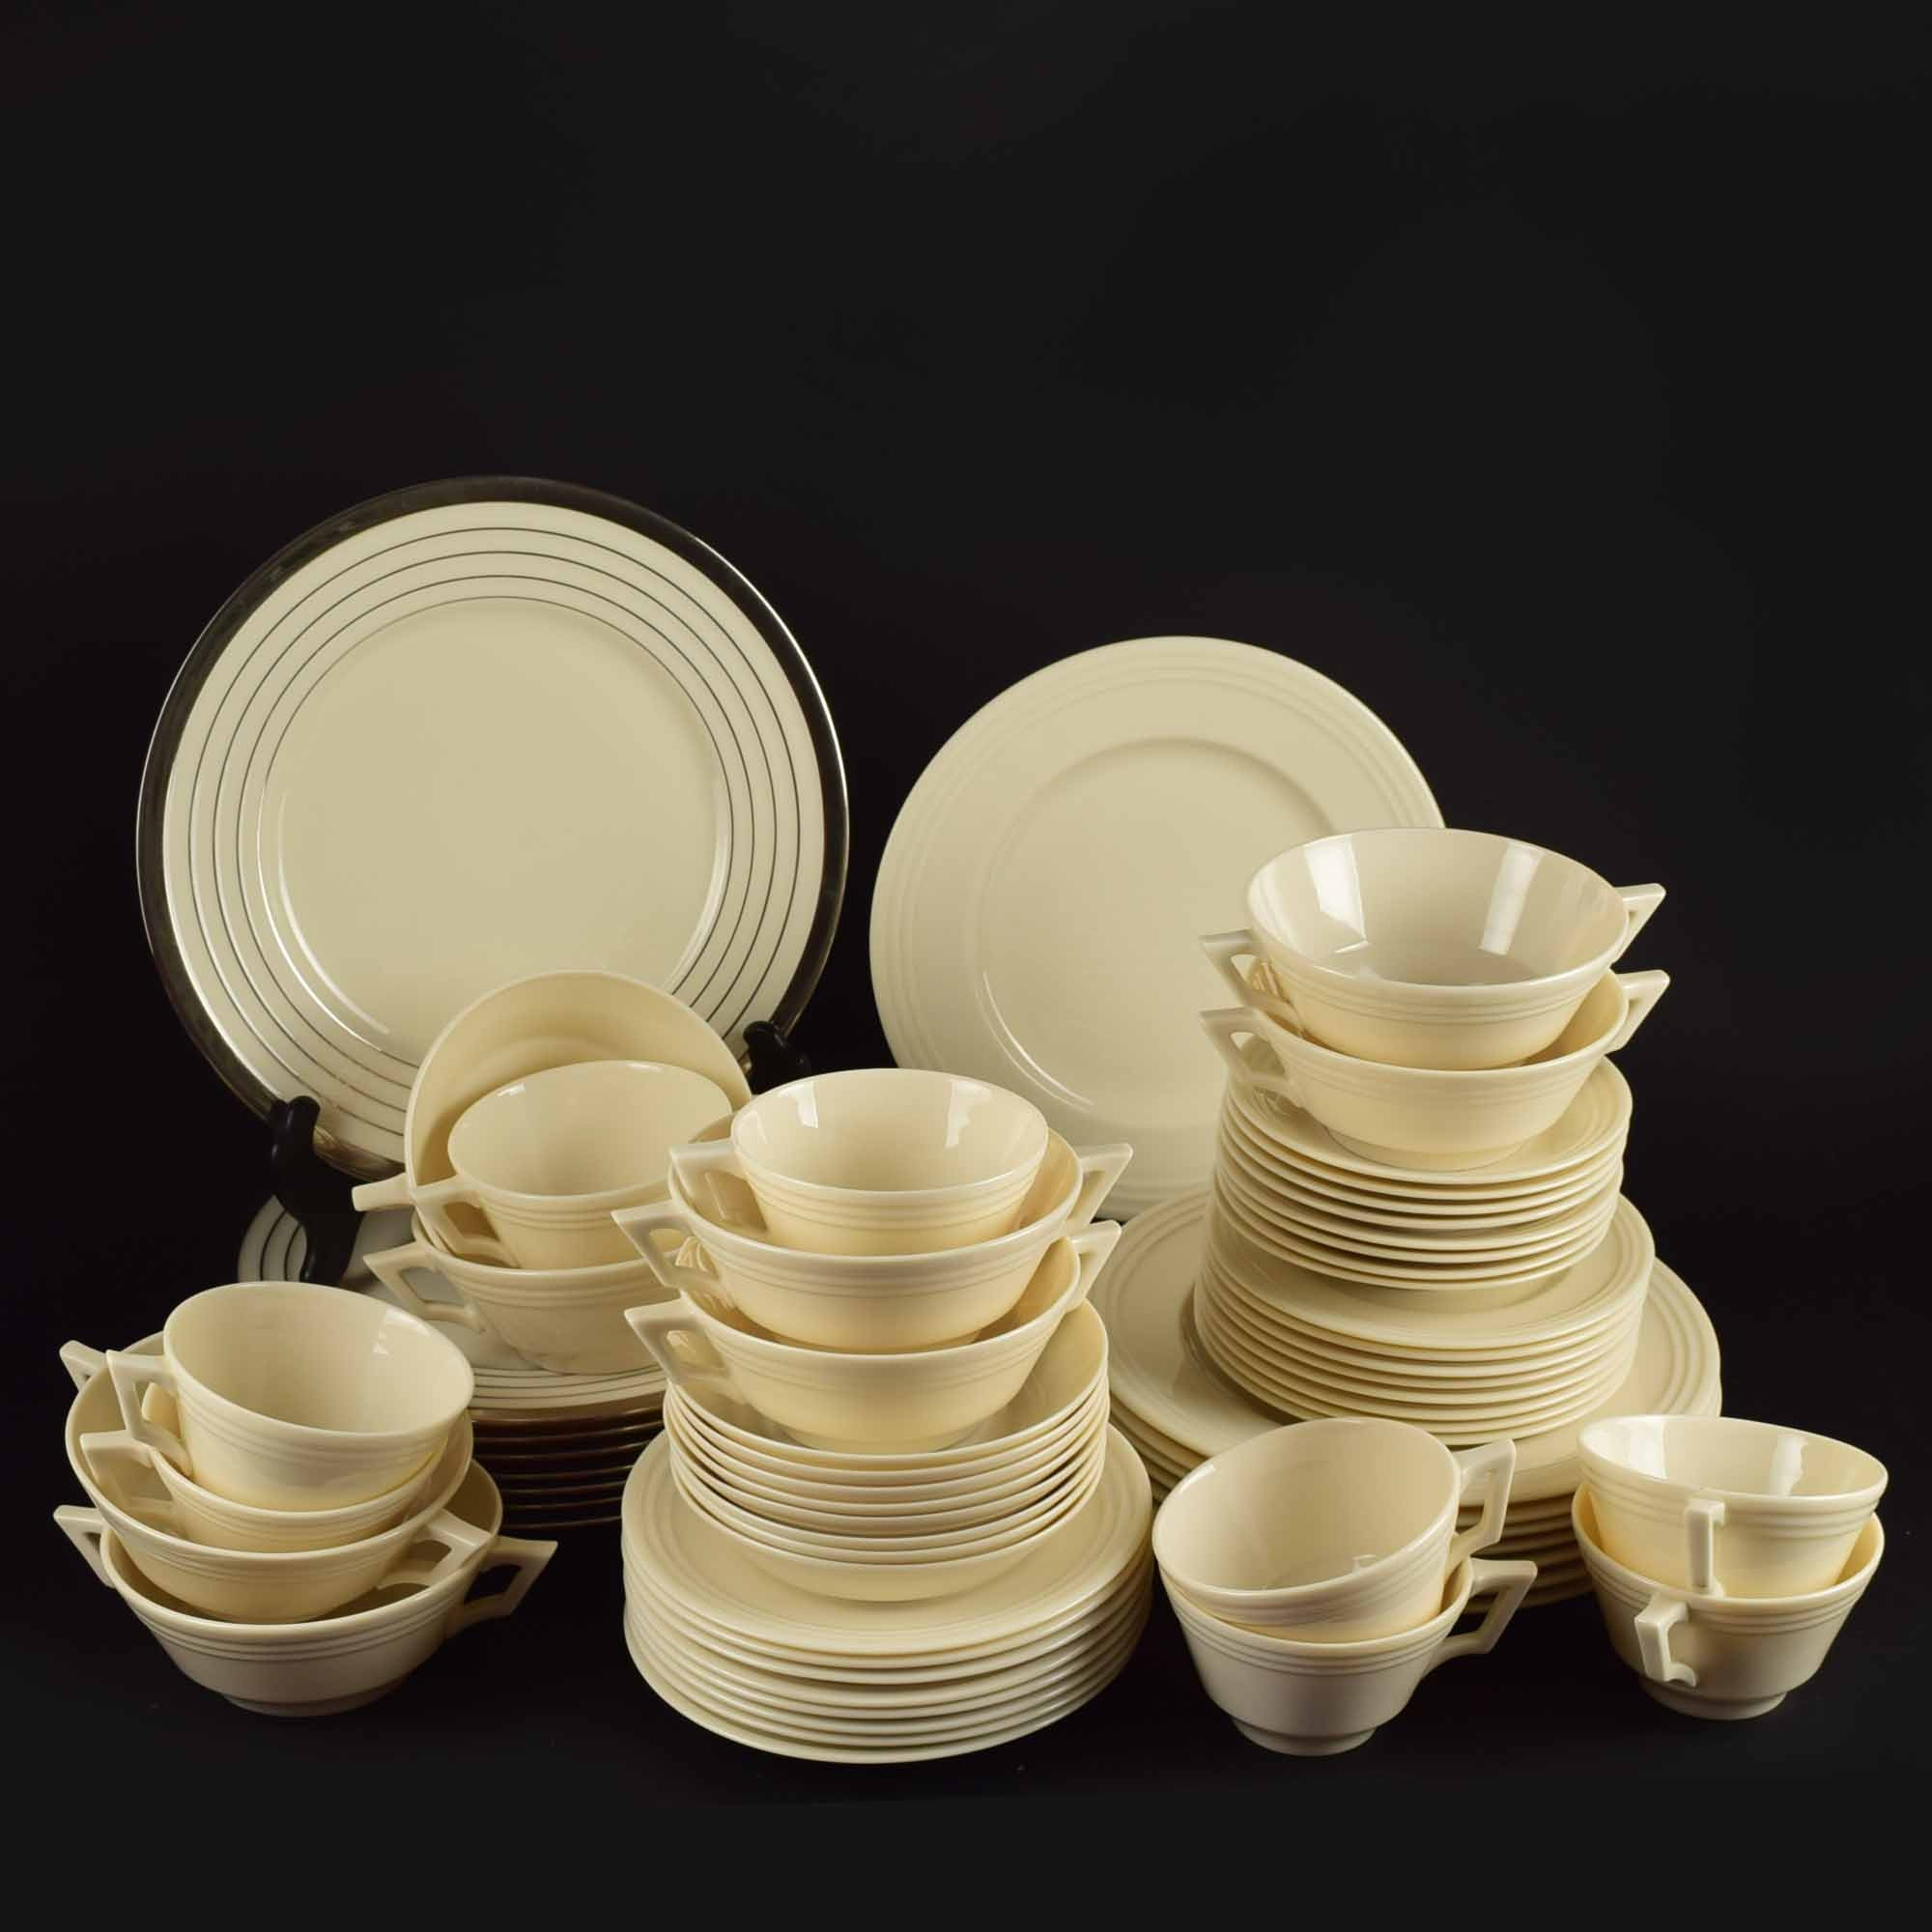 Vintage Lenox Art Deco Style China Service for Eight